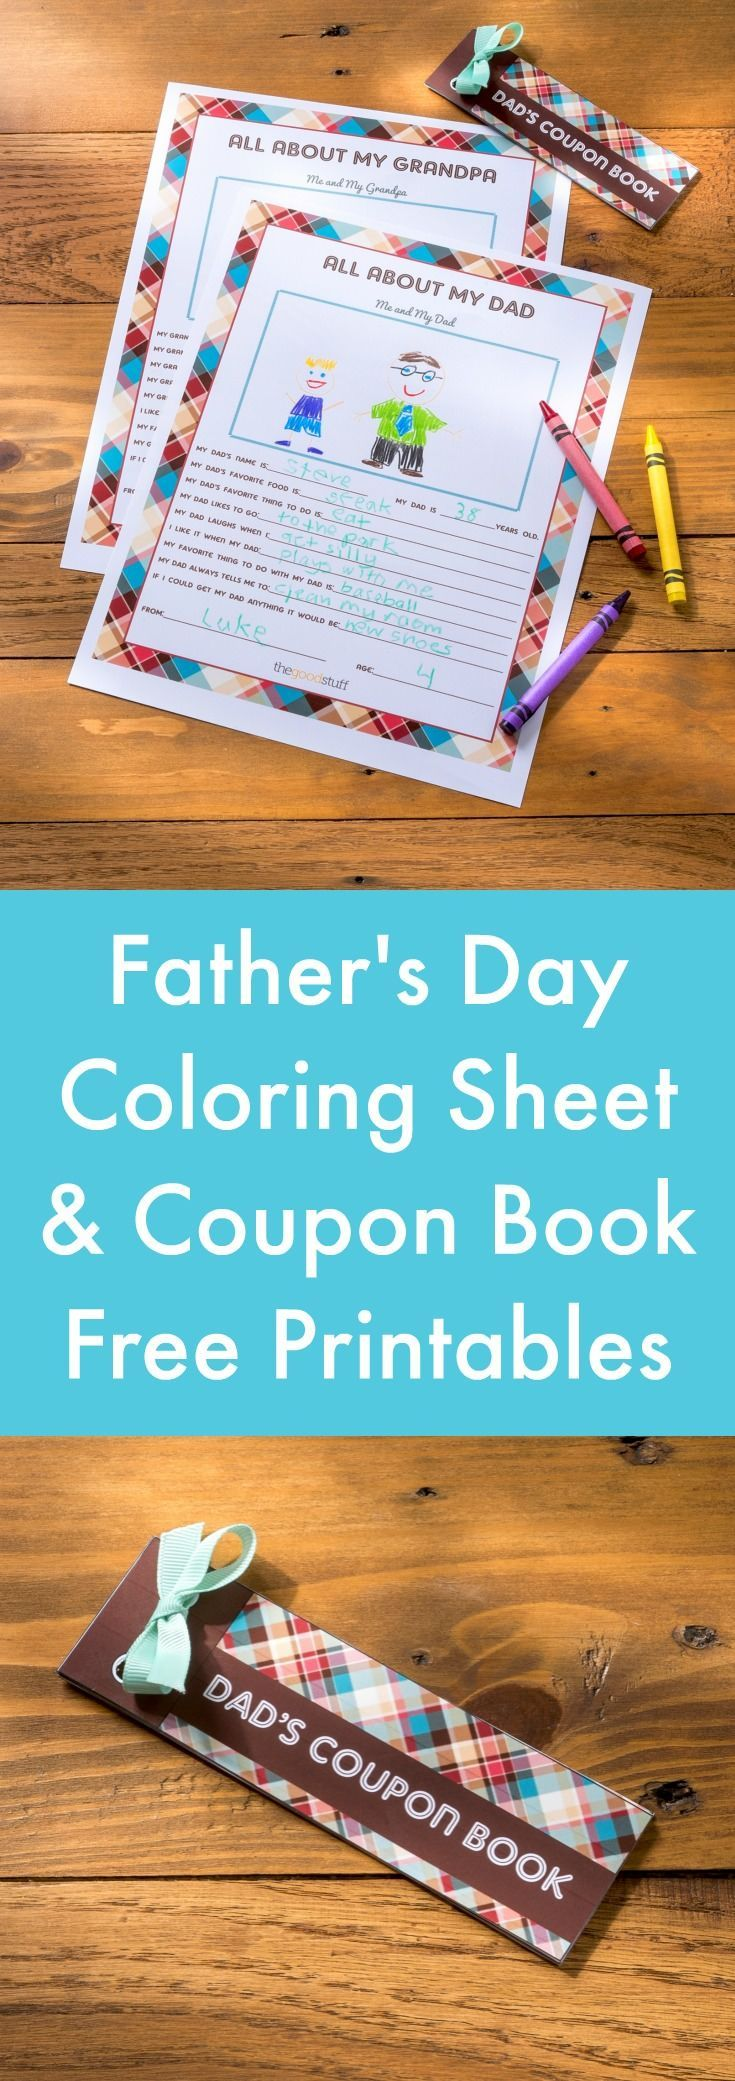 Are you ready to give dad one of his favorite gifts ever? Simply download these free printable Father's Day coupons and a coloring sheet - just click here!